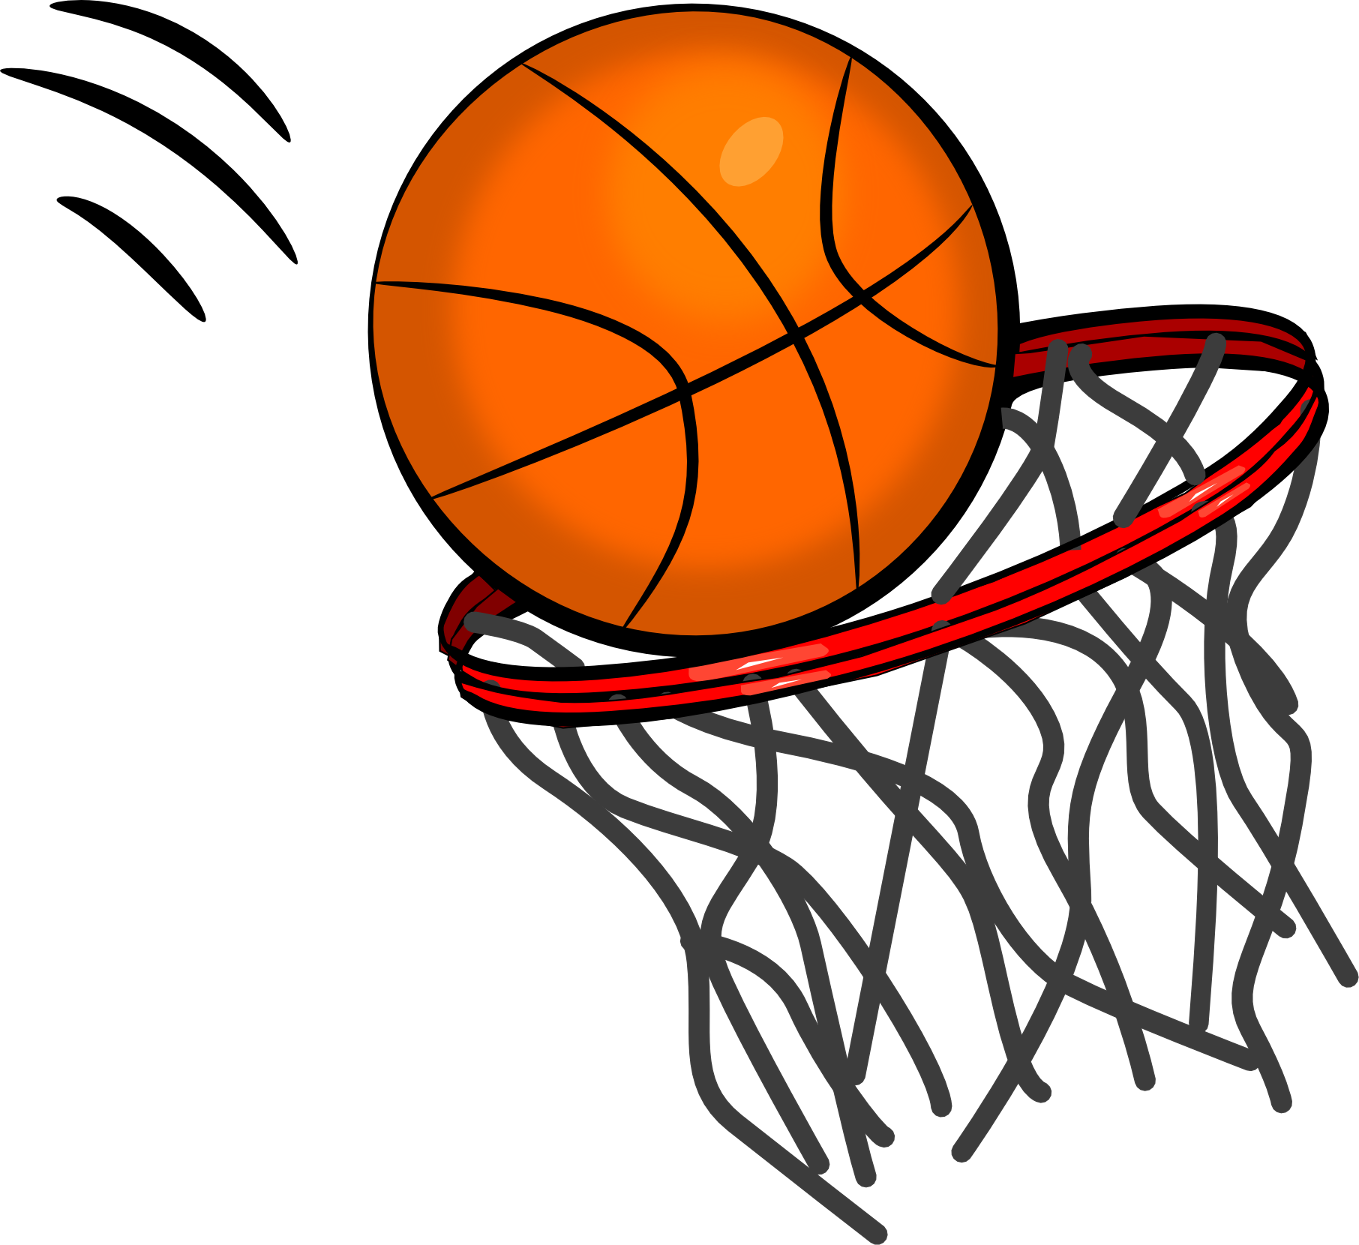 Clip Art Basketball & Clip Art Basketball Clip Art Images.